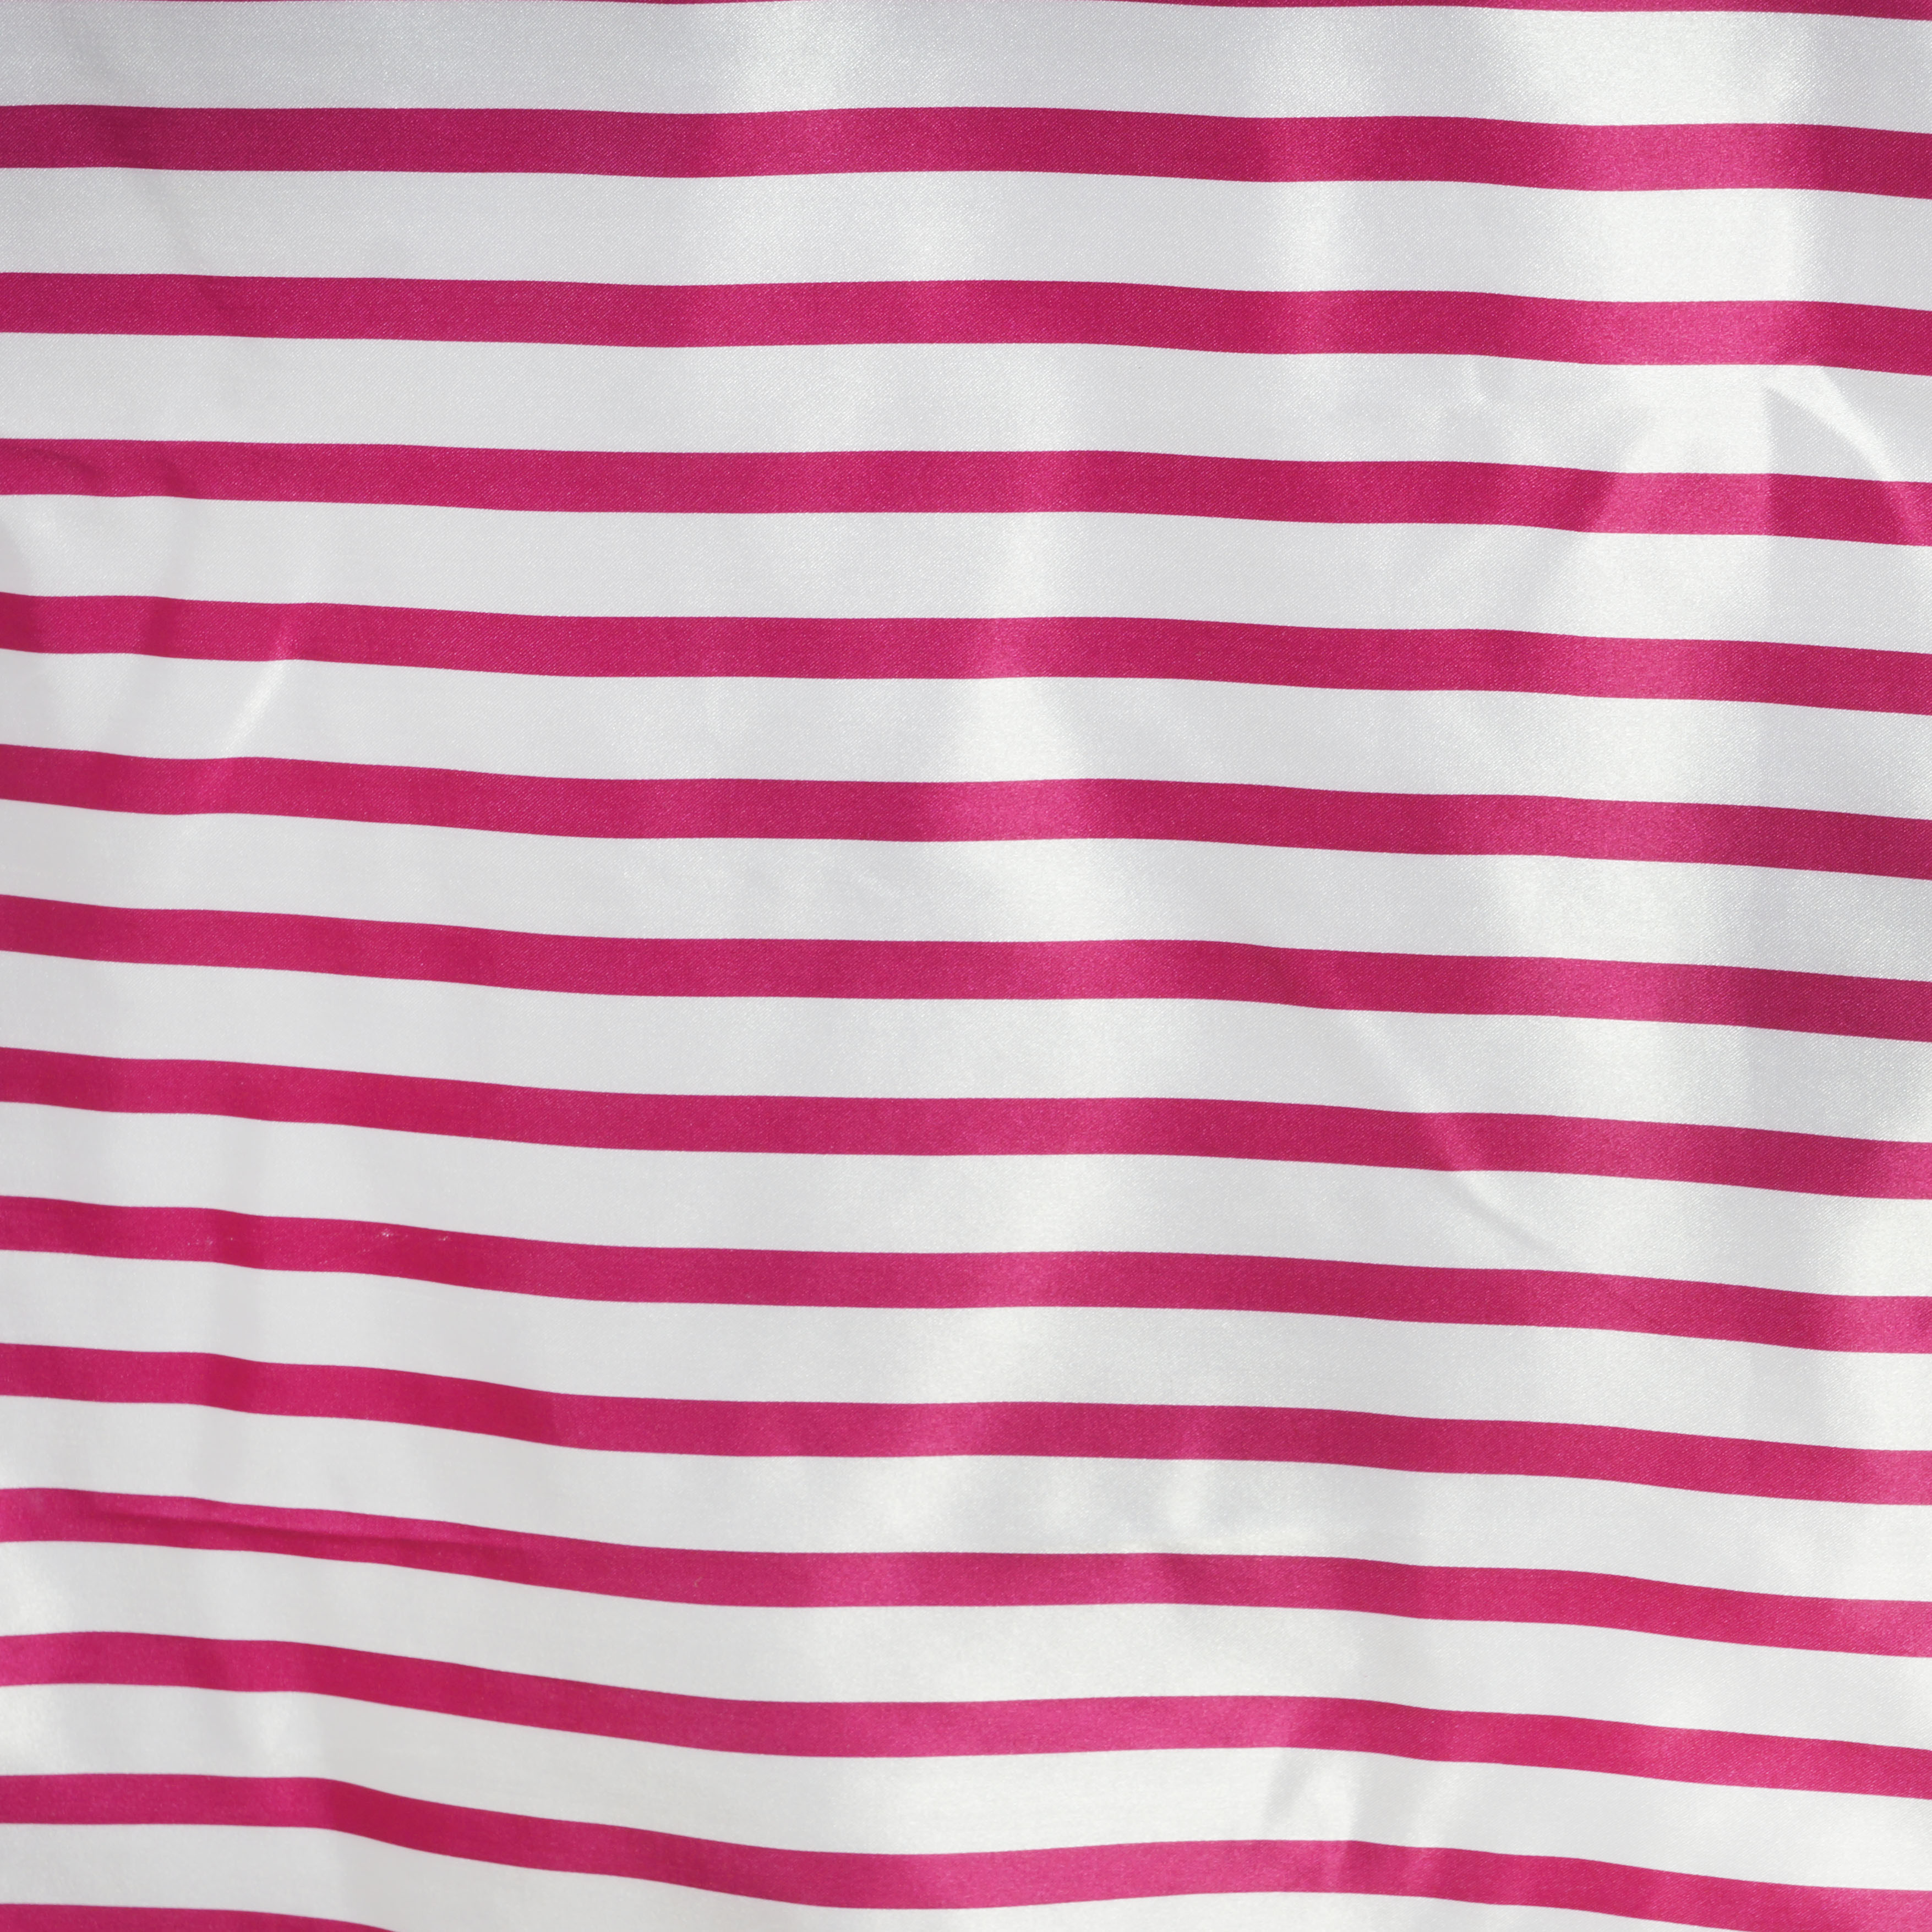 RECTANGULA-R-Striped-Satin-Tablecloth-Catering-Dinner-Wedding-Party-Linens-SALE thumbnail 5